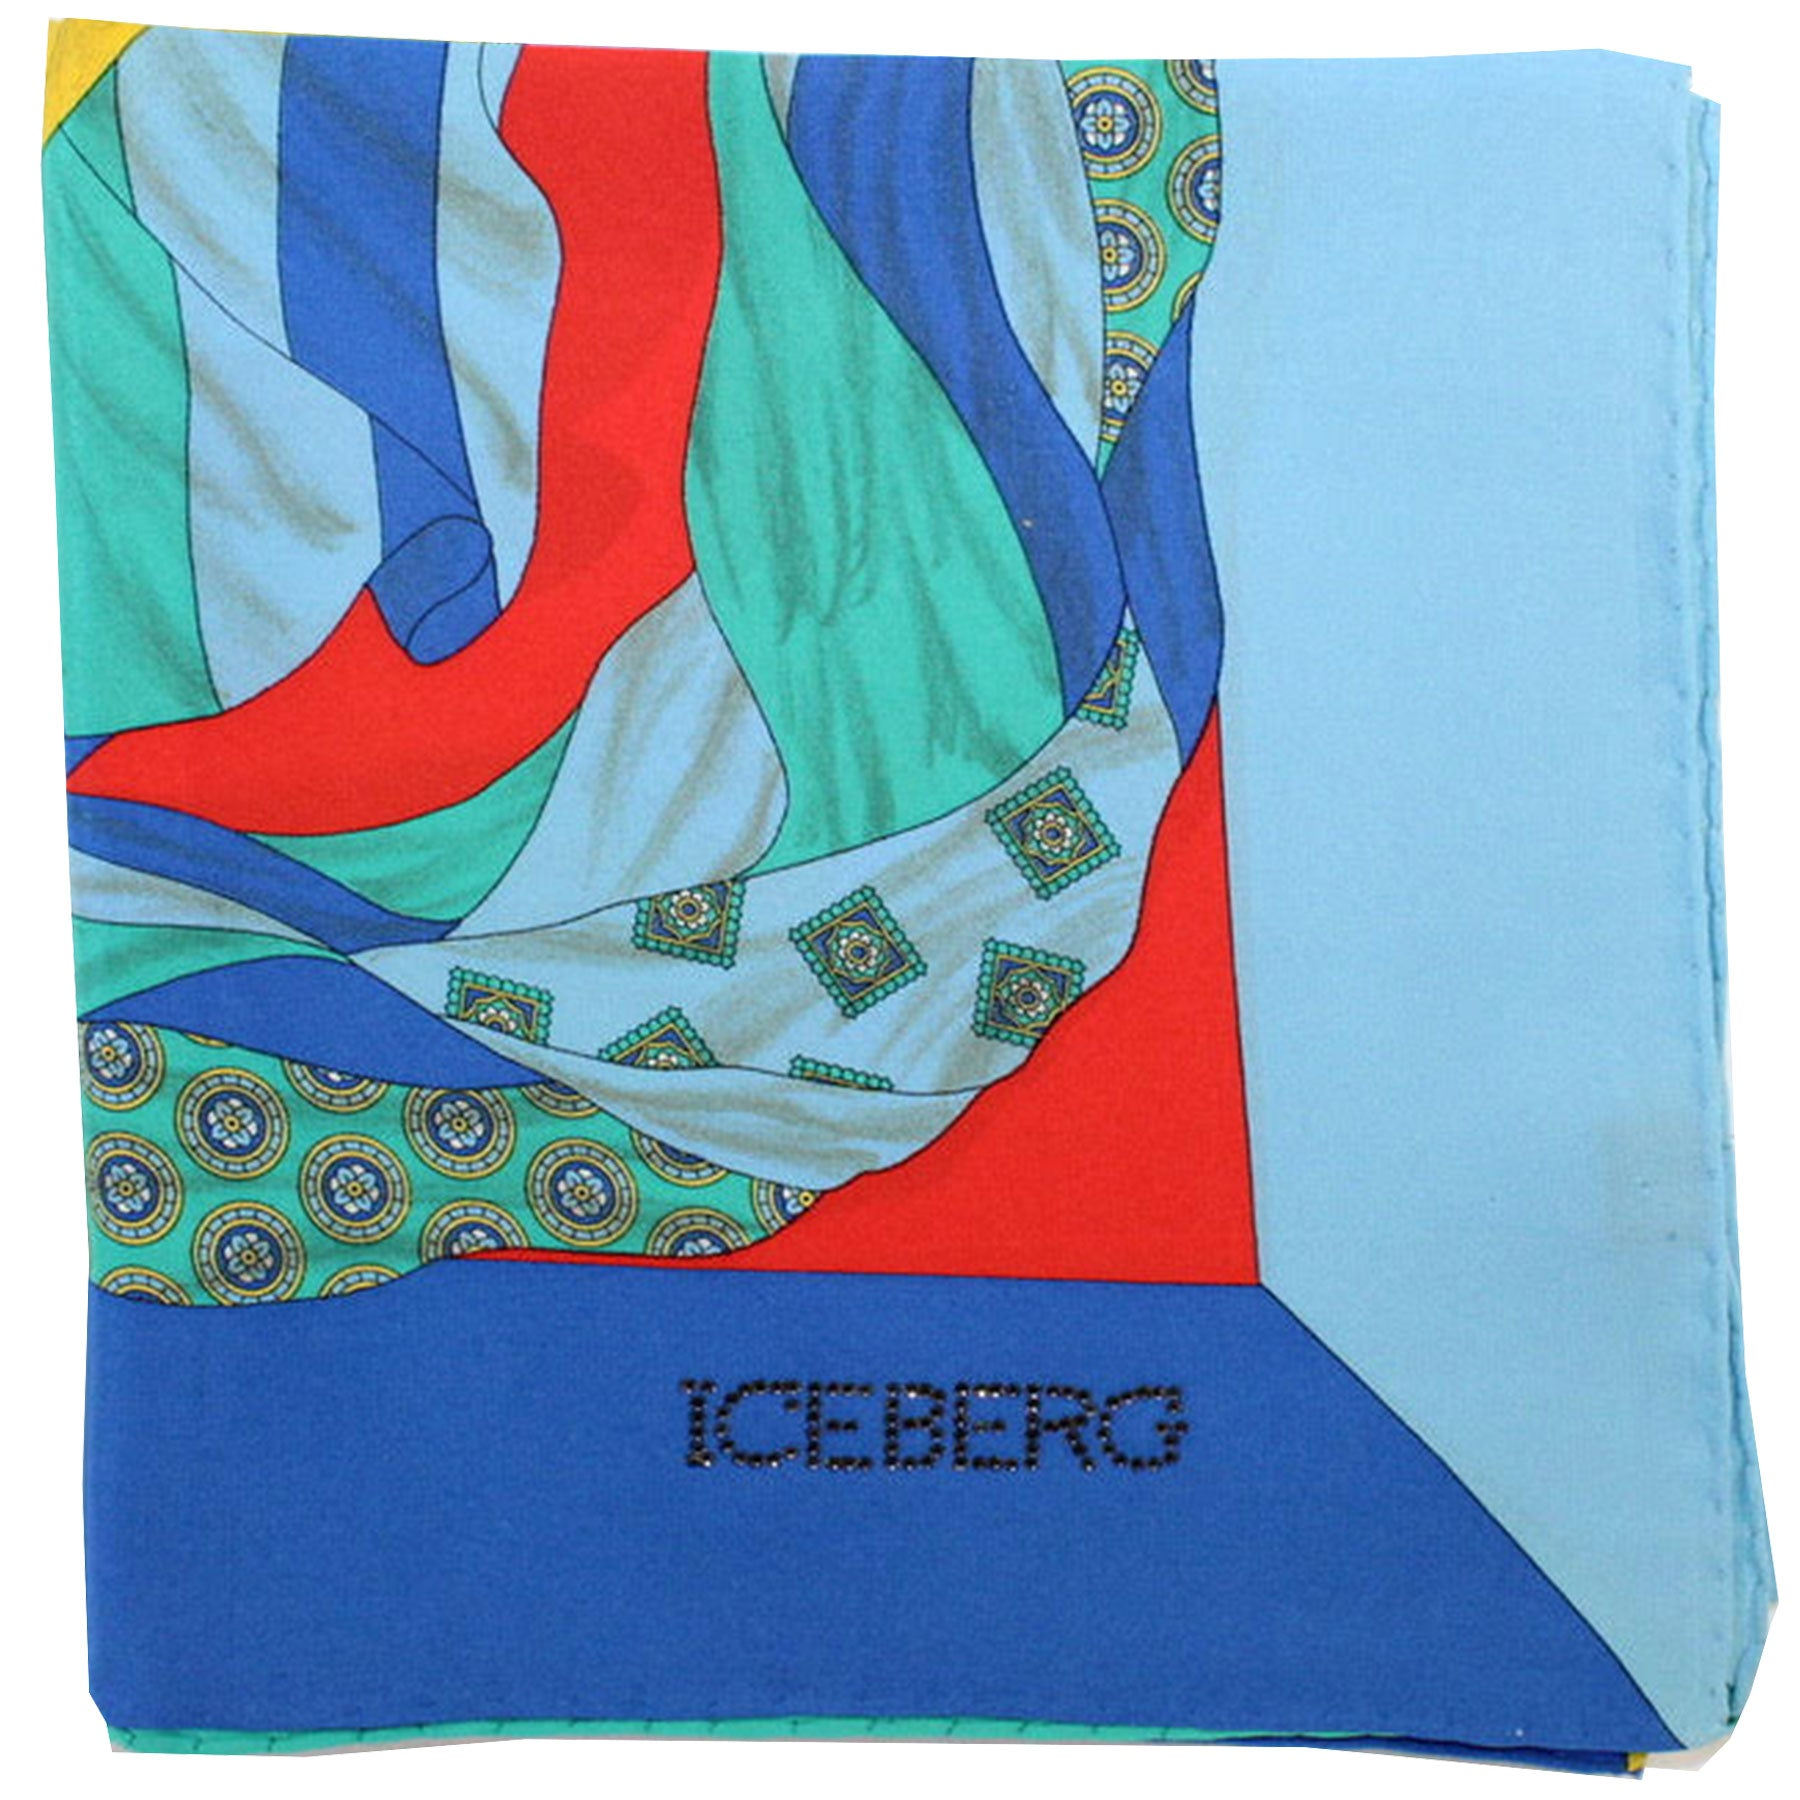 Iceberg Scarf Blue Orange Red Medallions Design - Large Silk Square Foulard